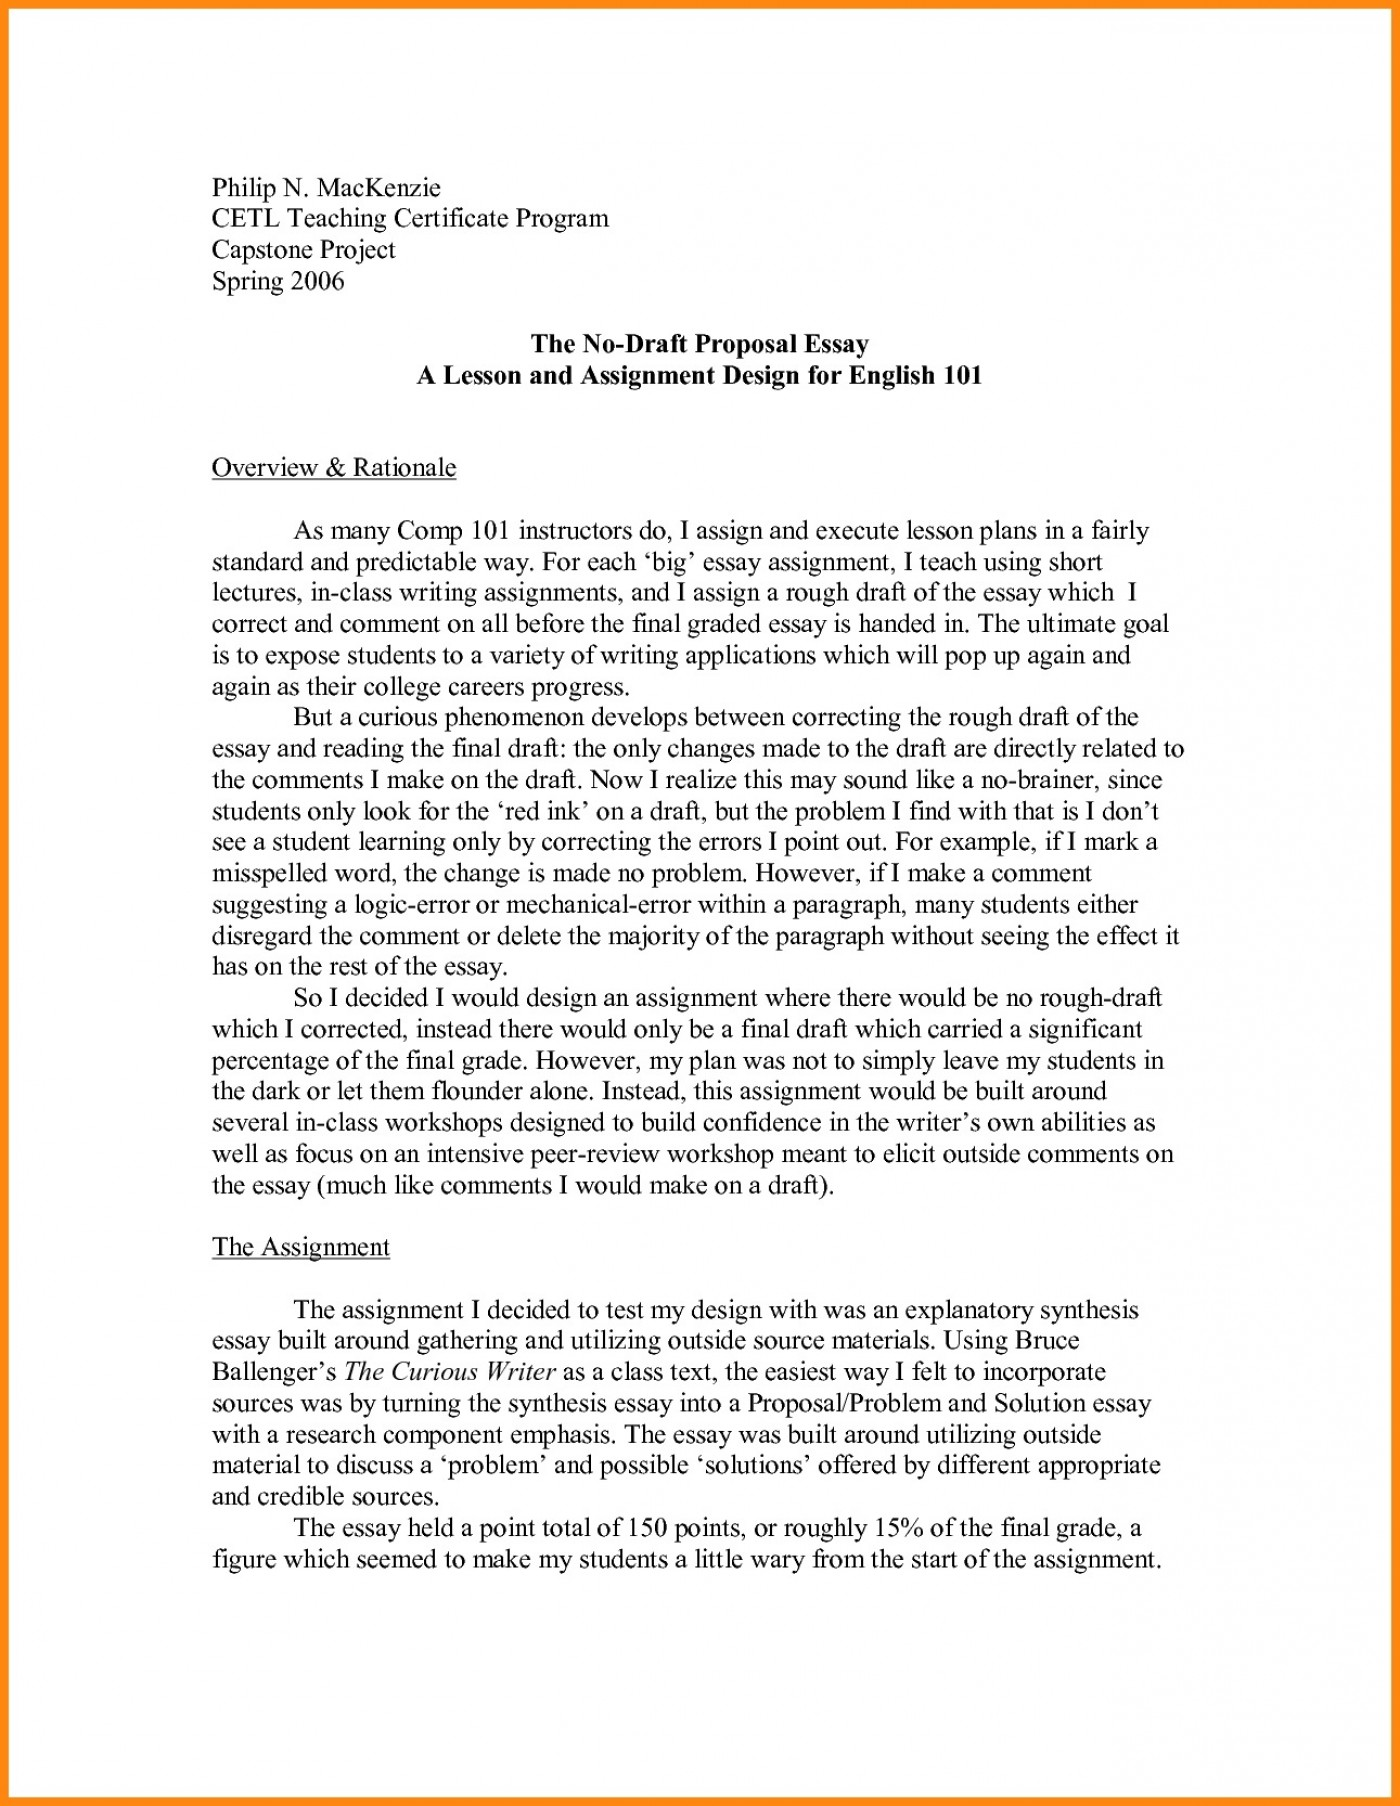 019 Research Paper Papers Topics For Finance Topic Proposal Example Essay At Phenomenal High School Students About Elementary Education Hot In Computer Science 1400